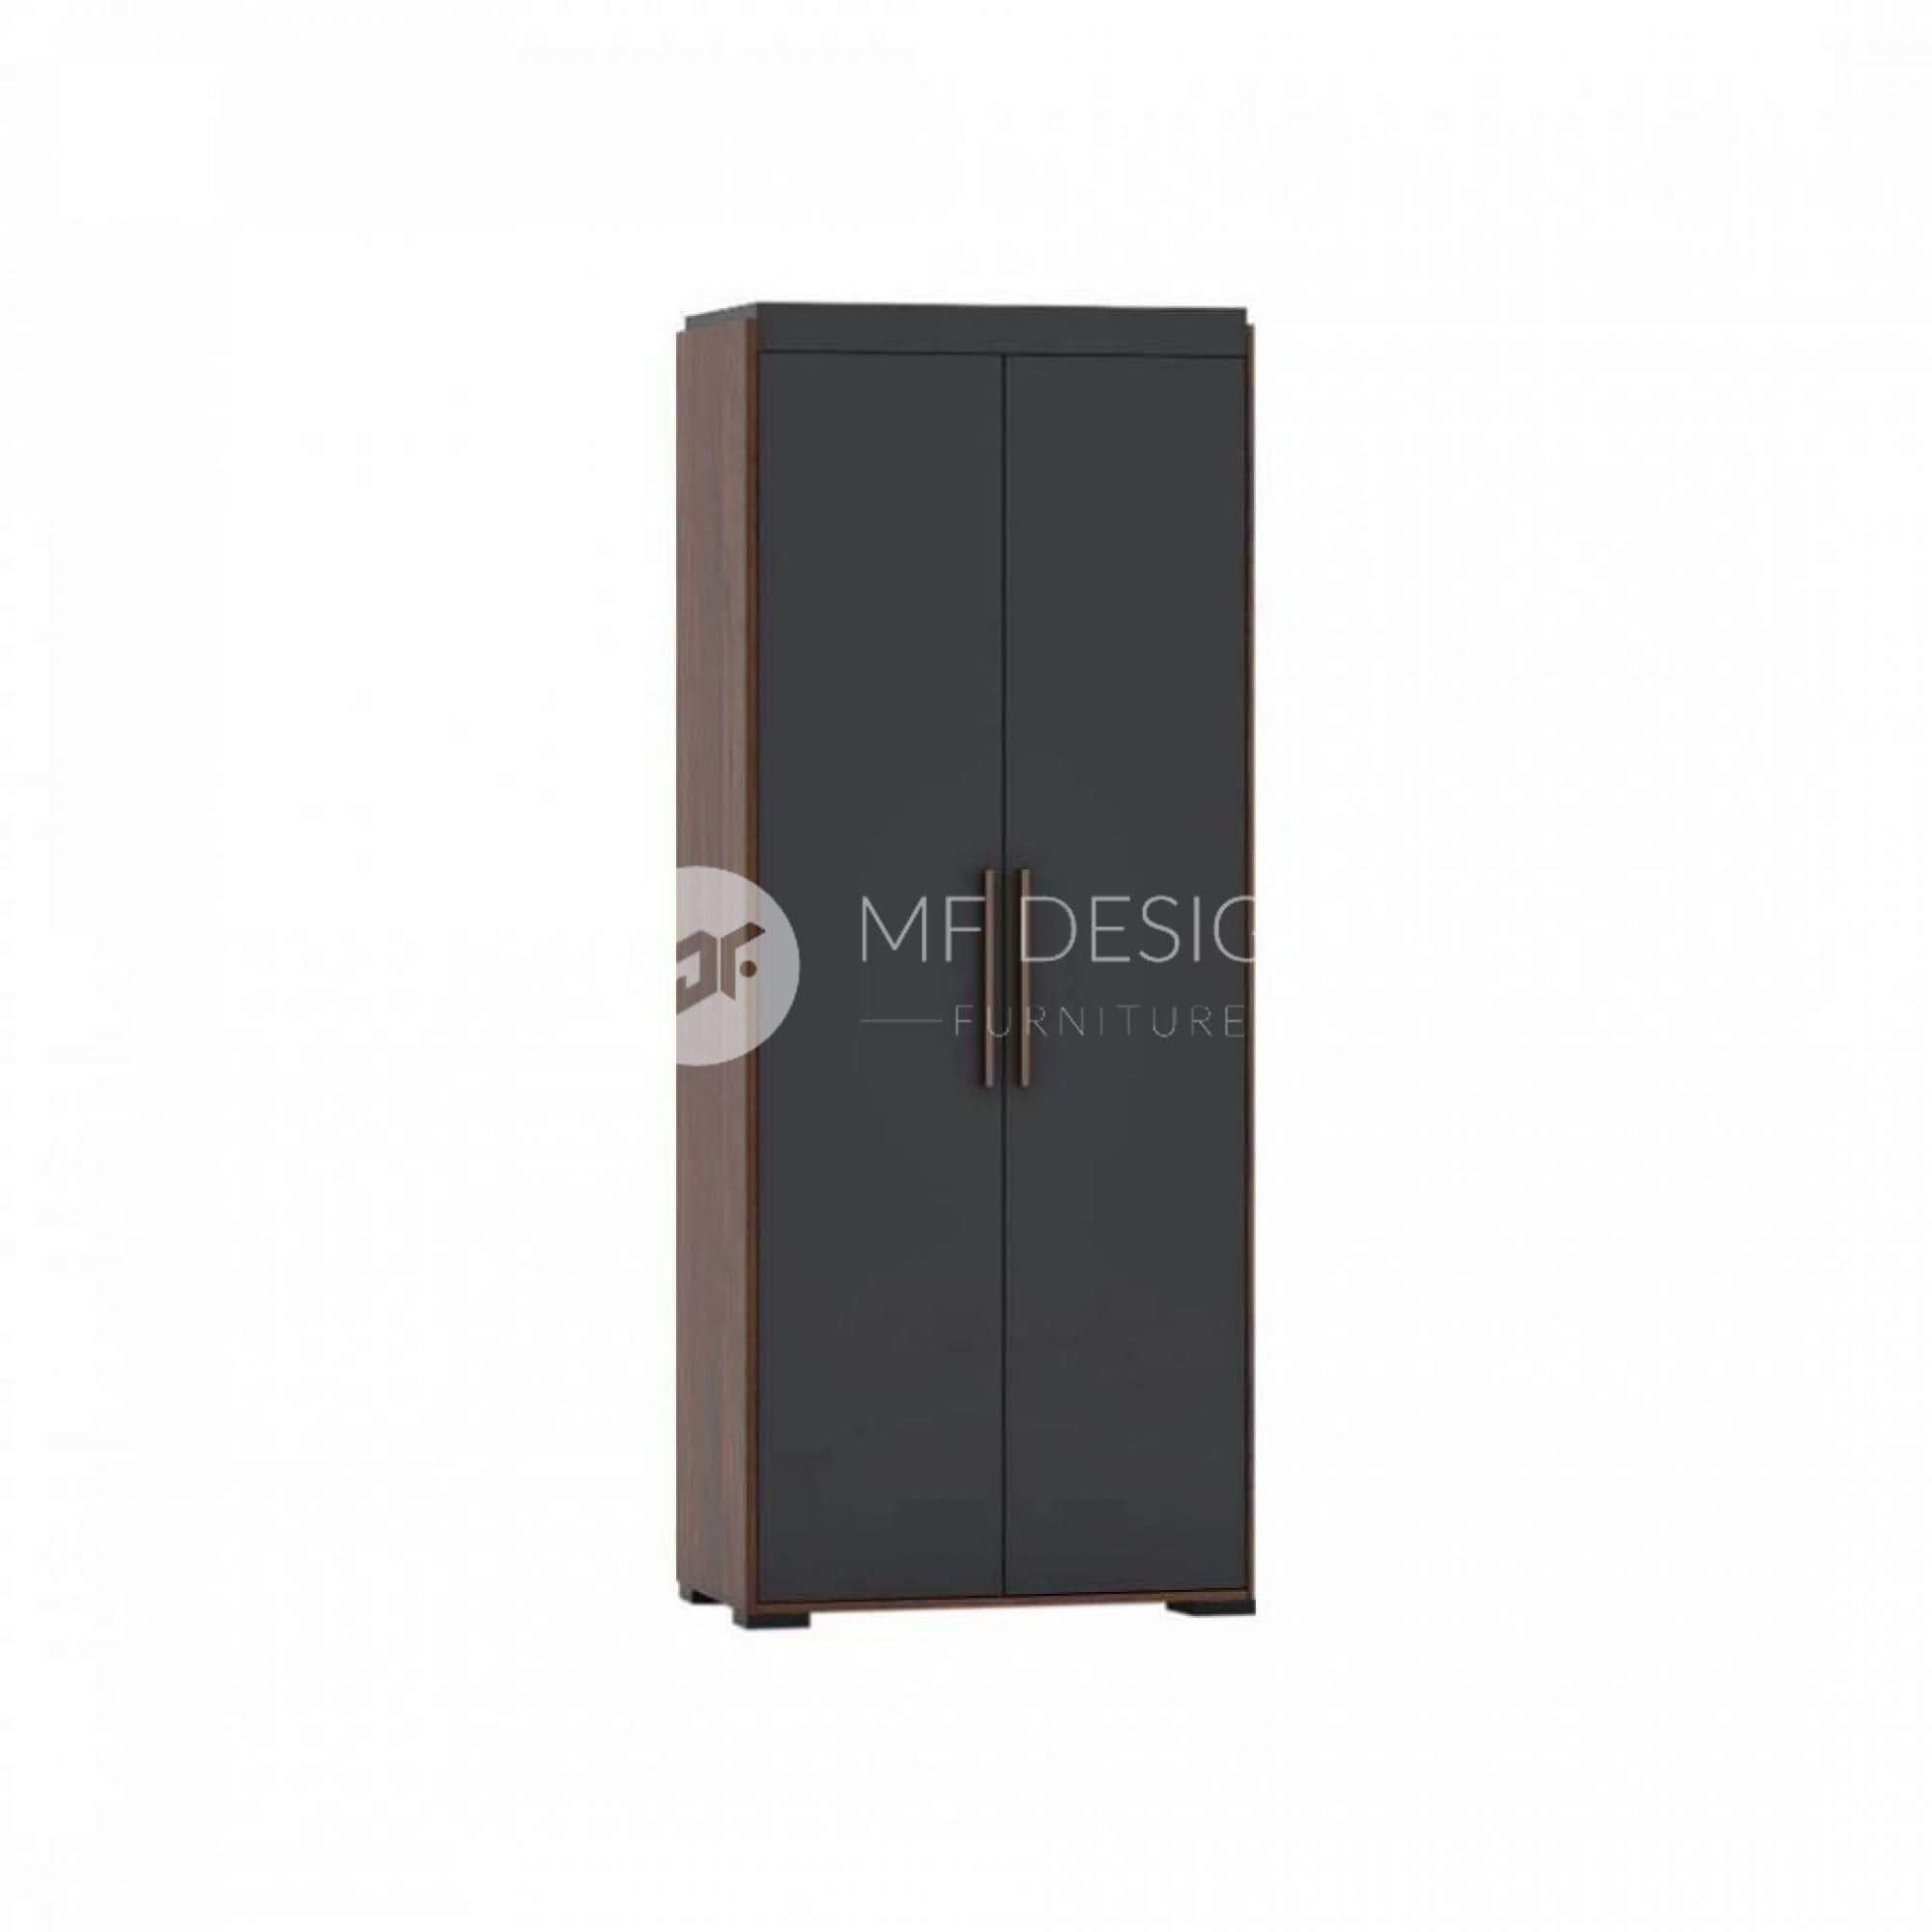 24 JORTEN TWO DOOR WARDROBE